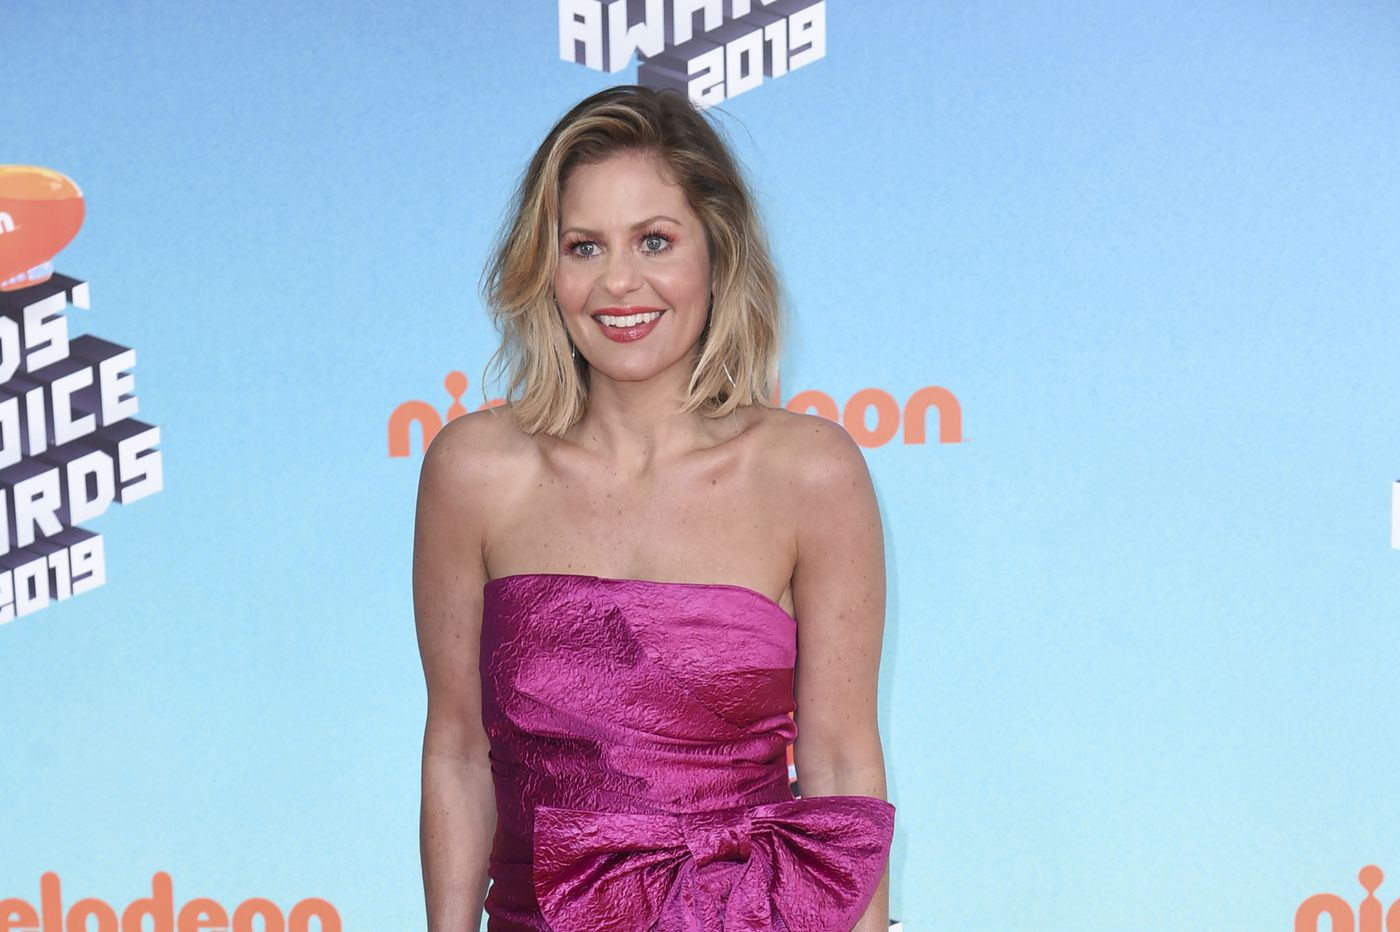 'Fuller House' actress gets co-star's support